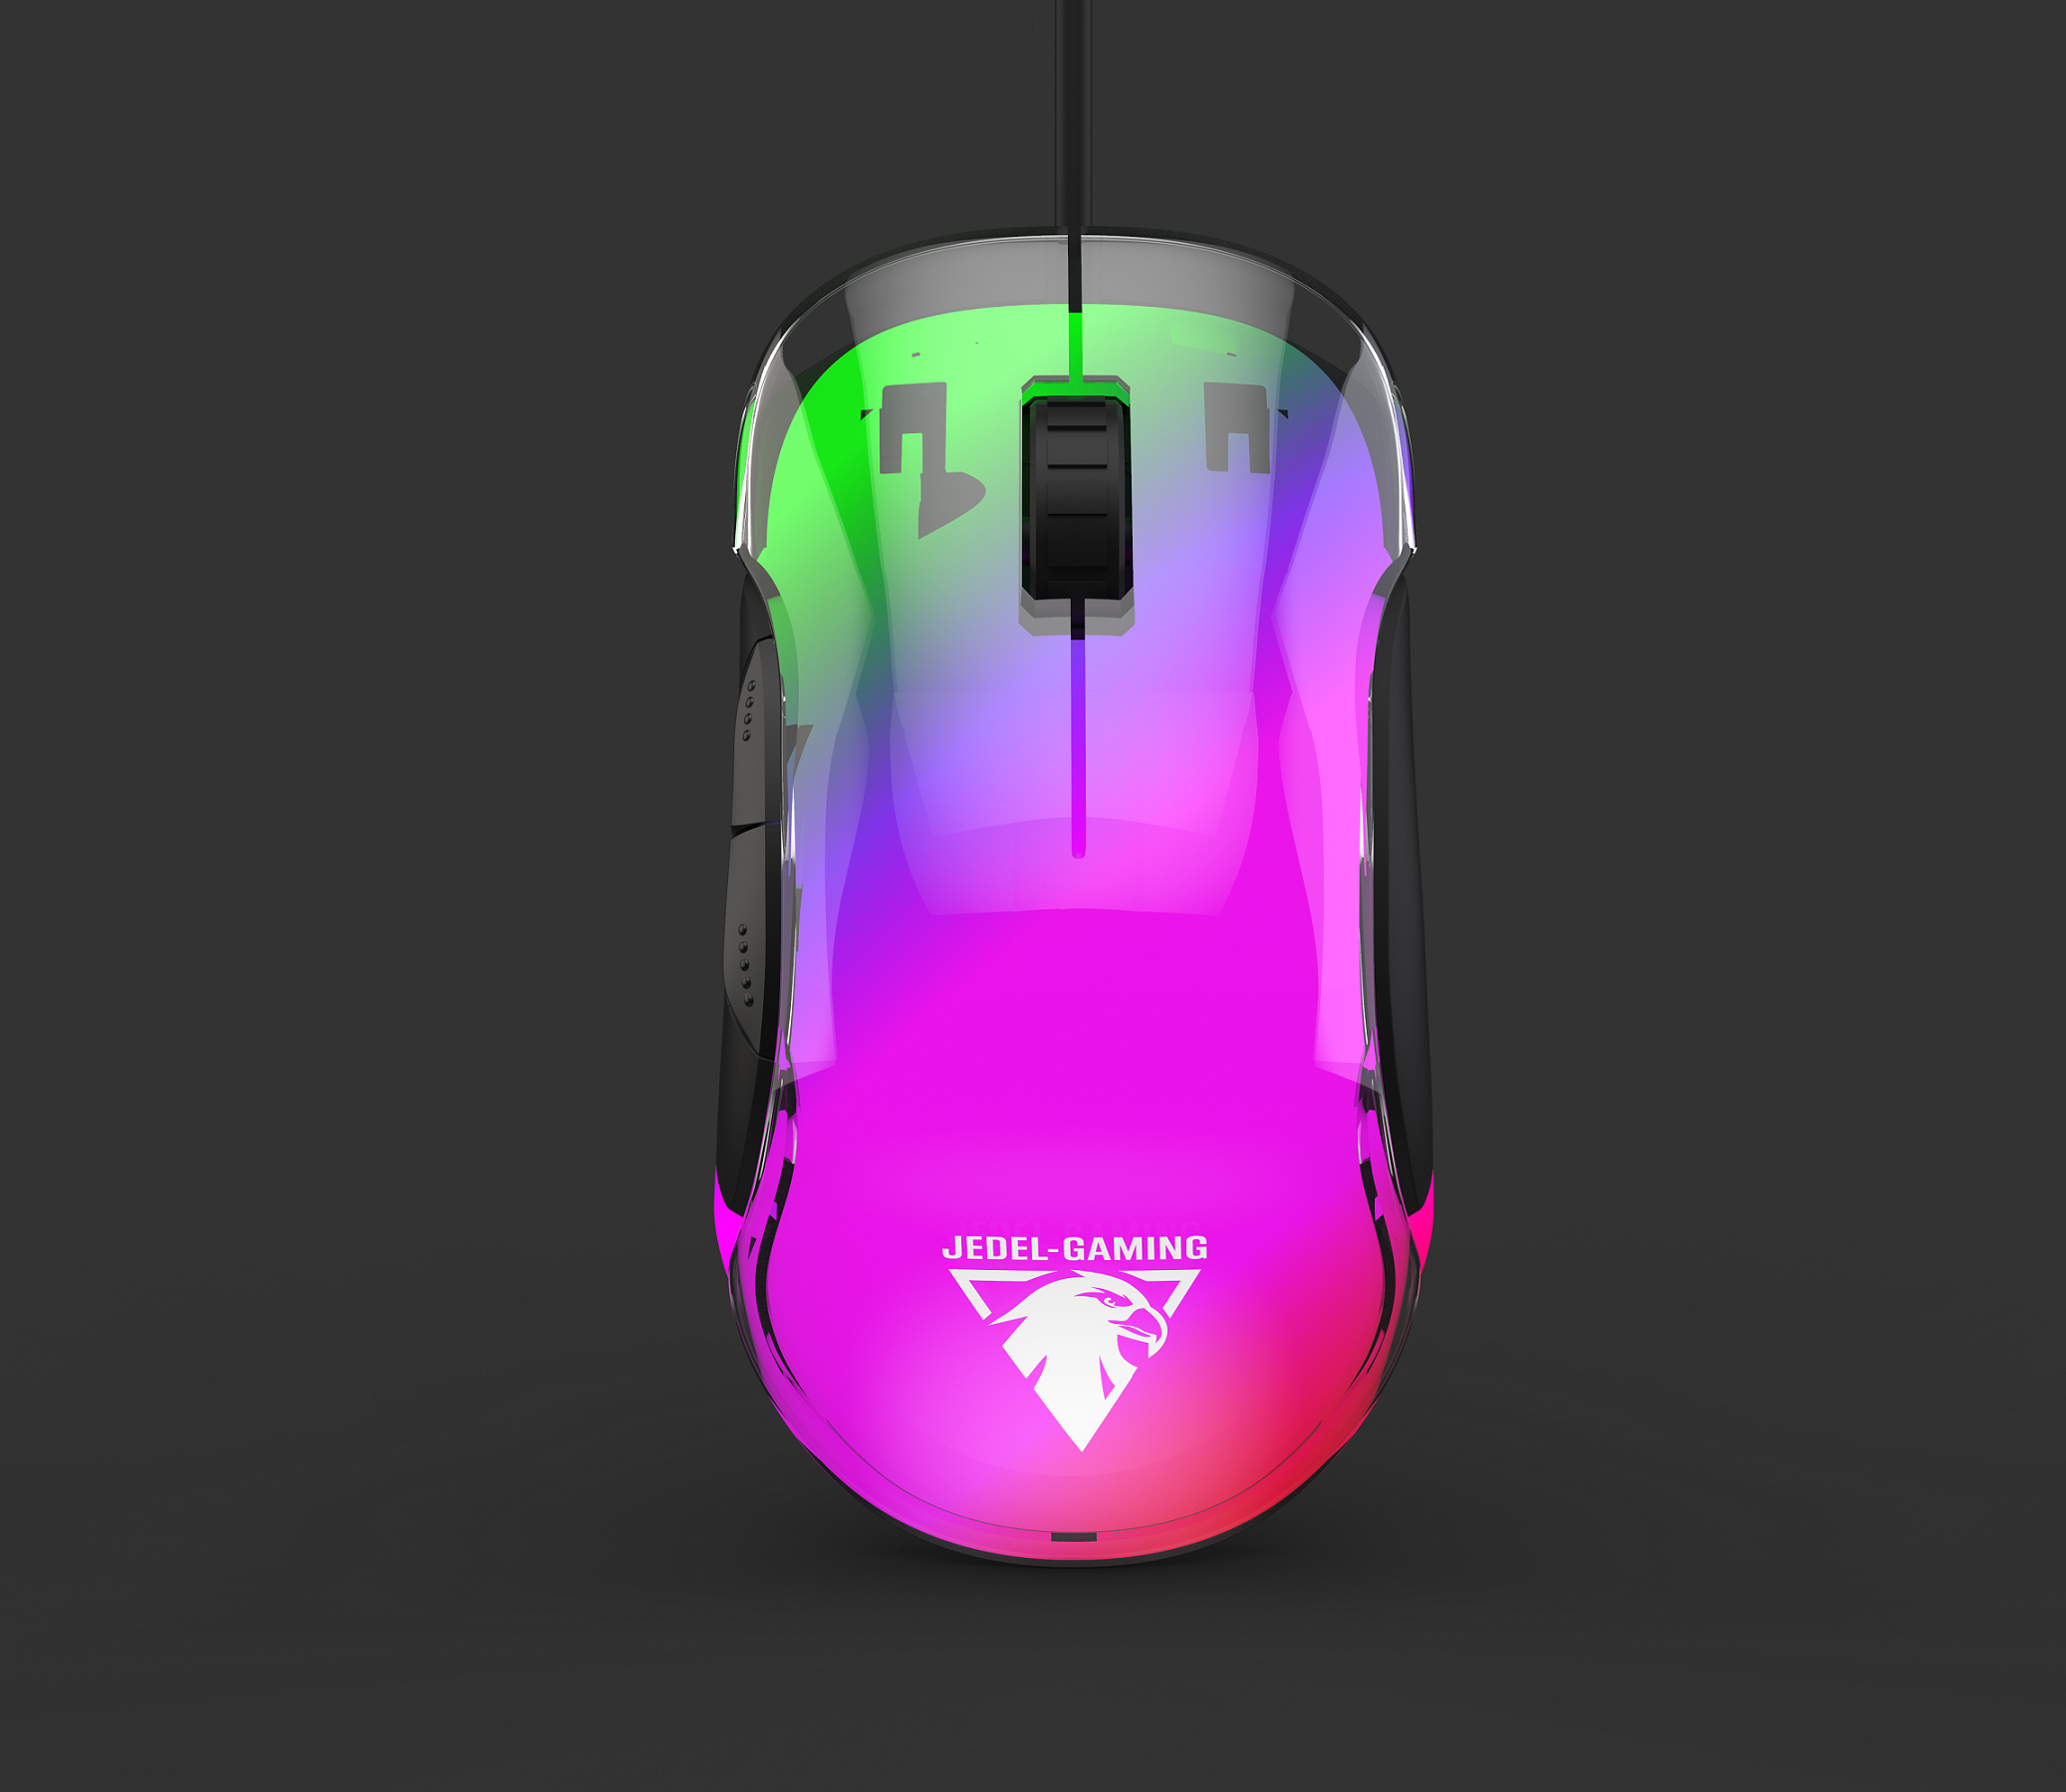 8D gaming mouse